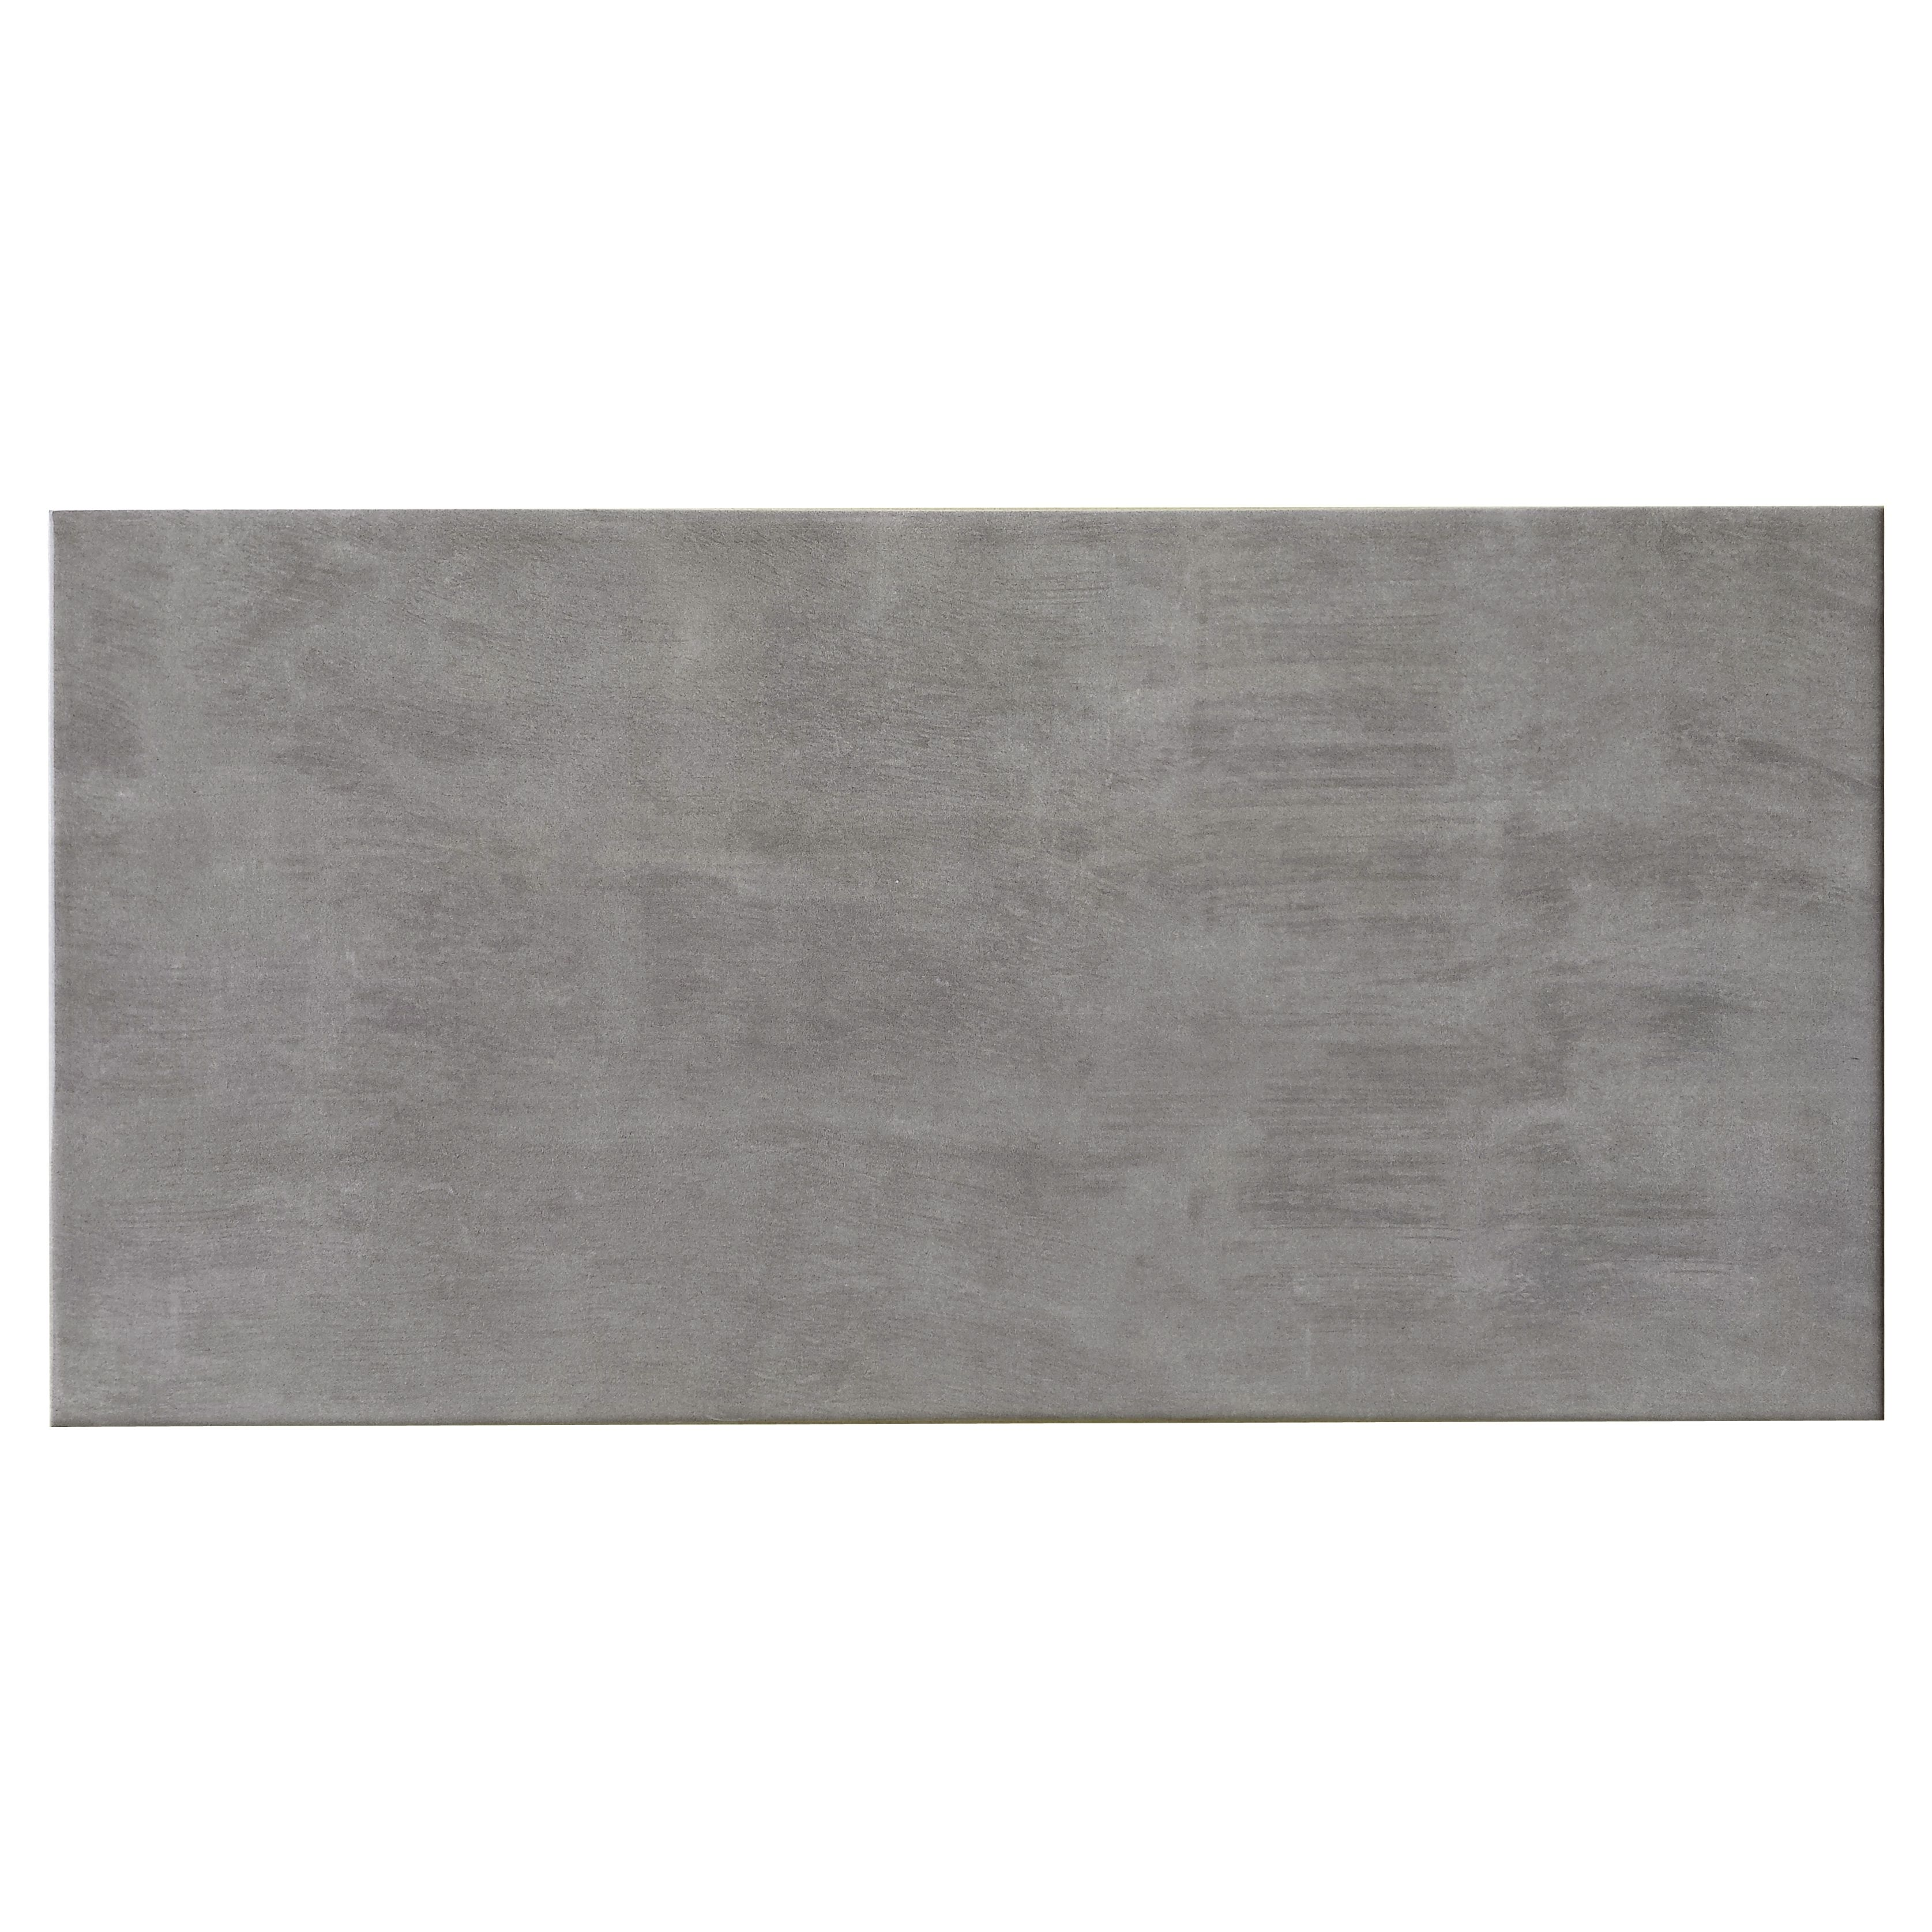 Kettlecove Grey Ceramic Wall Tile Kettlecove Collection